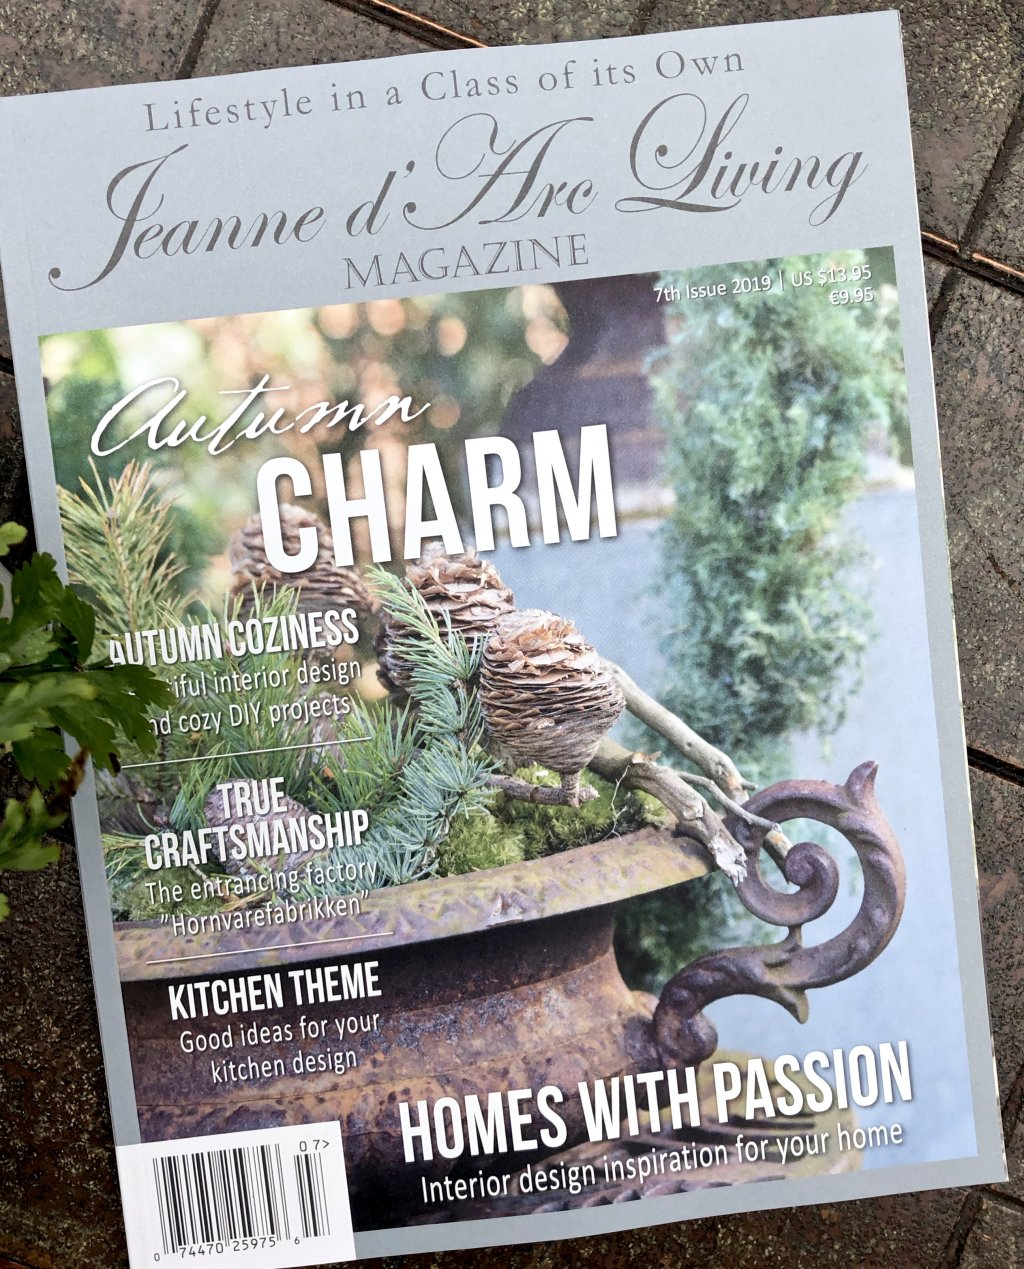 Jeanne d'Arc Living Magazine | Issue 7| 2019